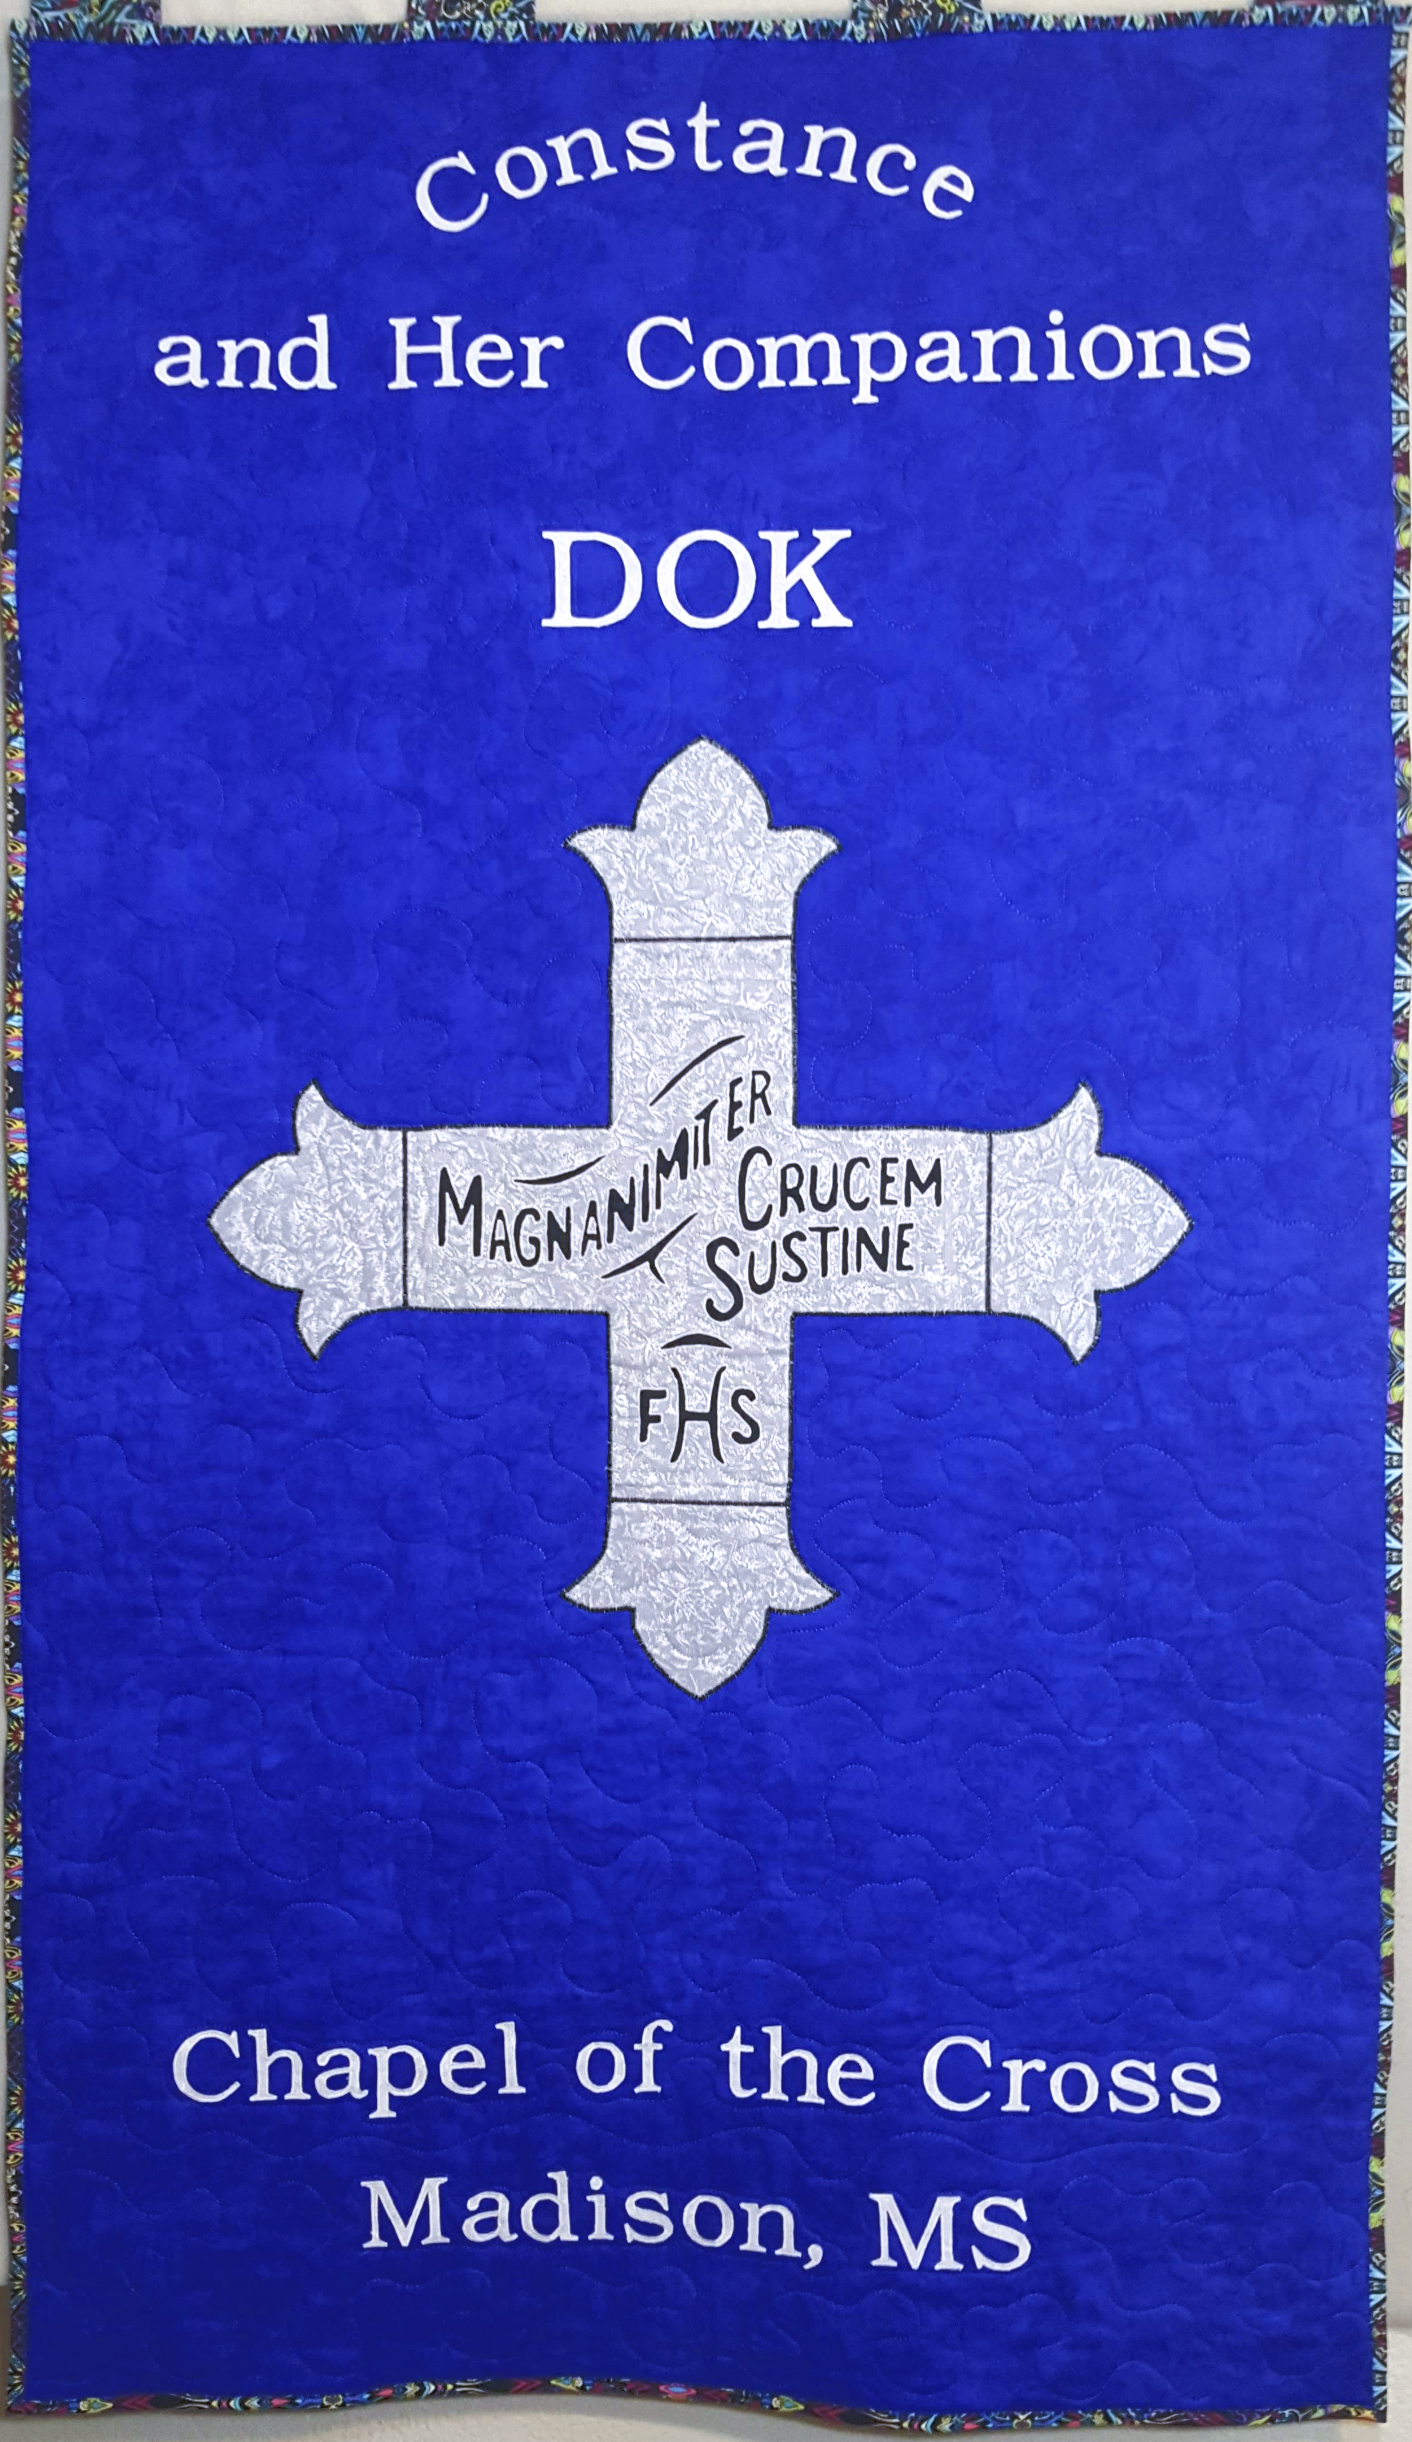 DOK-Constance & Her Companions